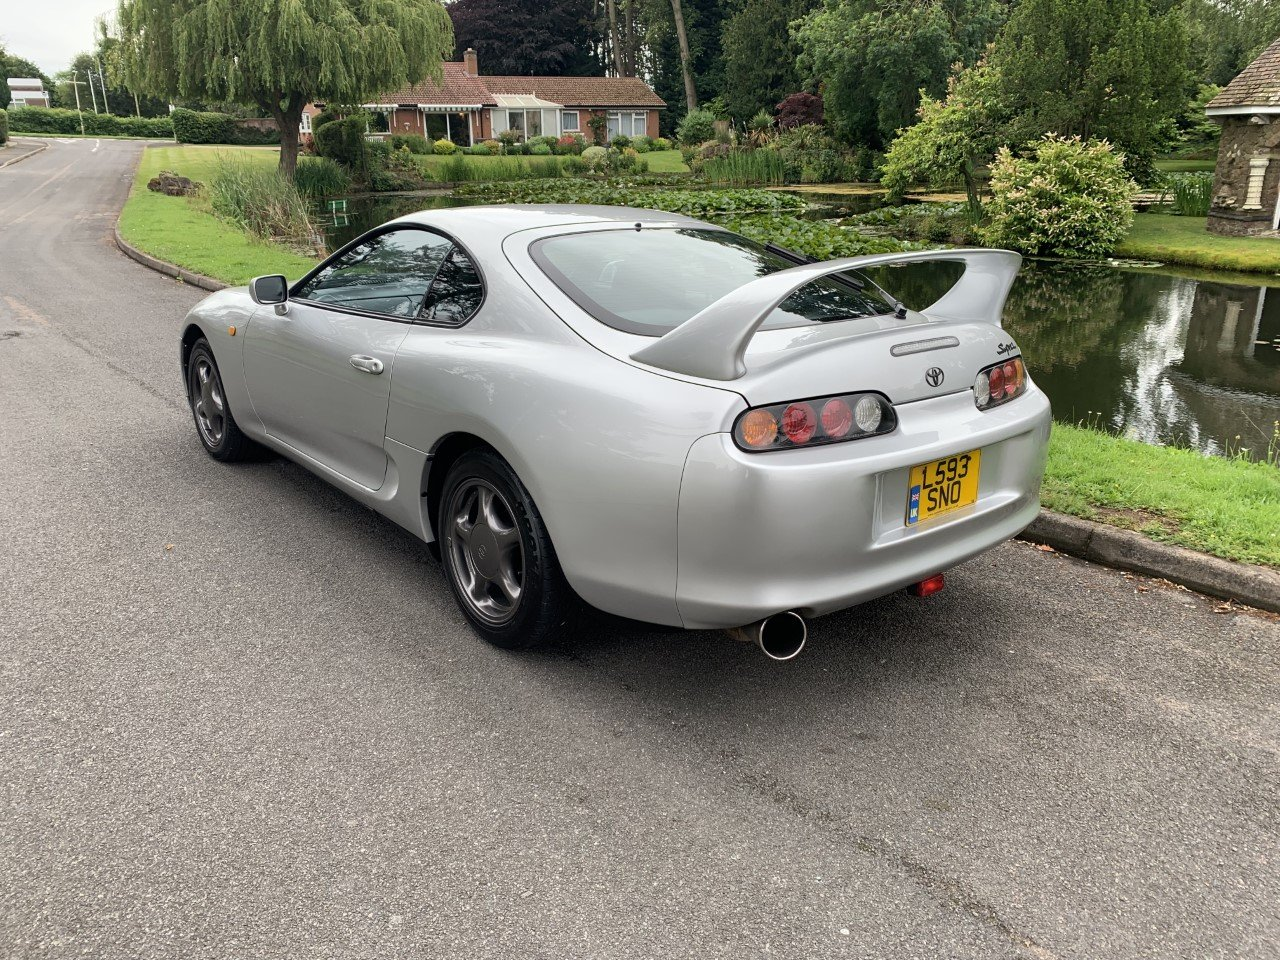 1994 toyota supra twin turbo auto 43k 1 owner For Sale (picture 4 of 6)